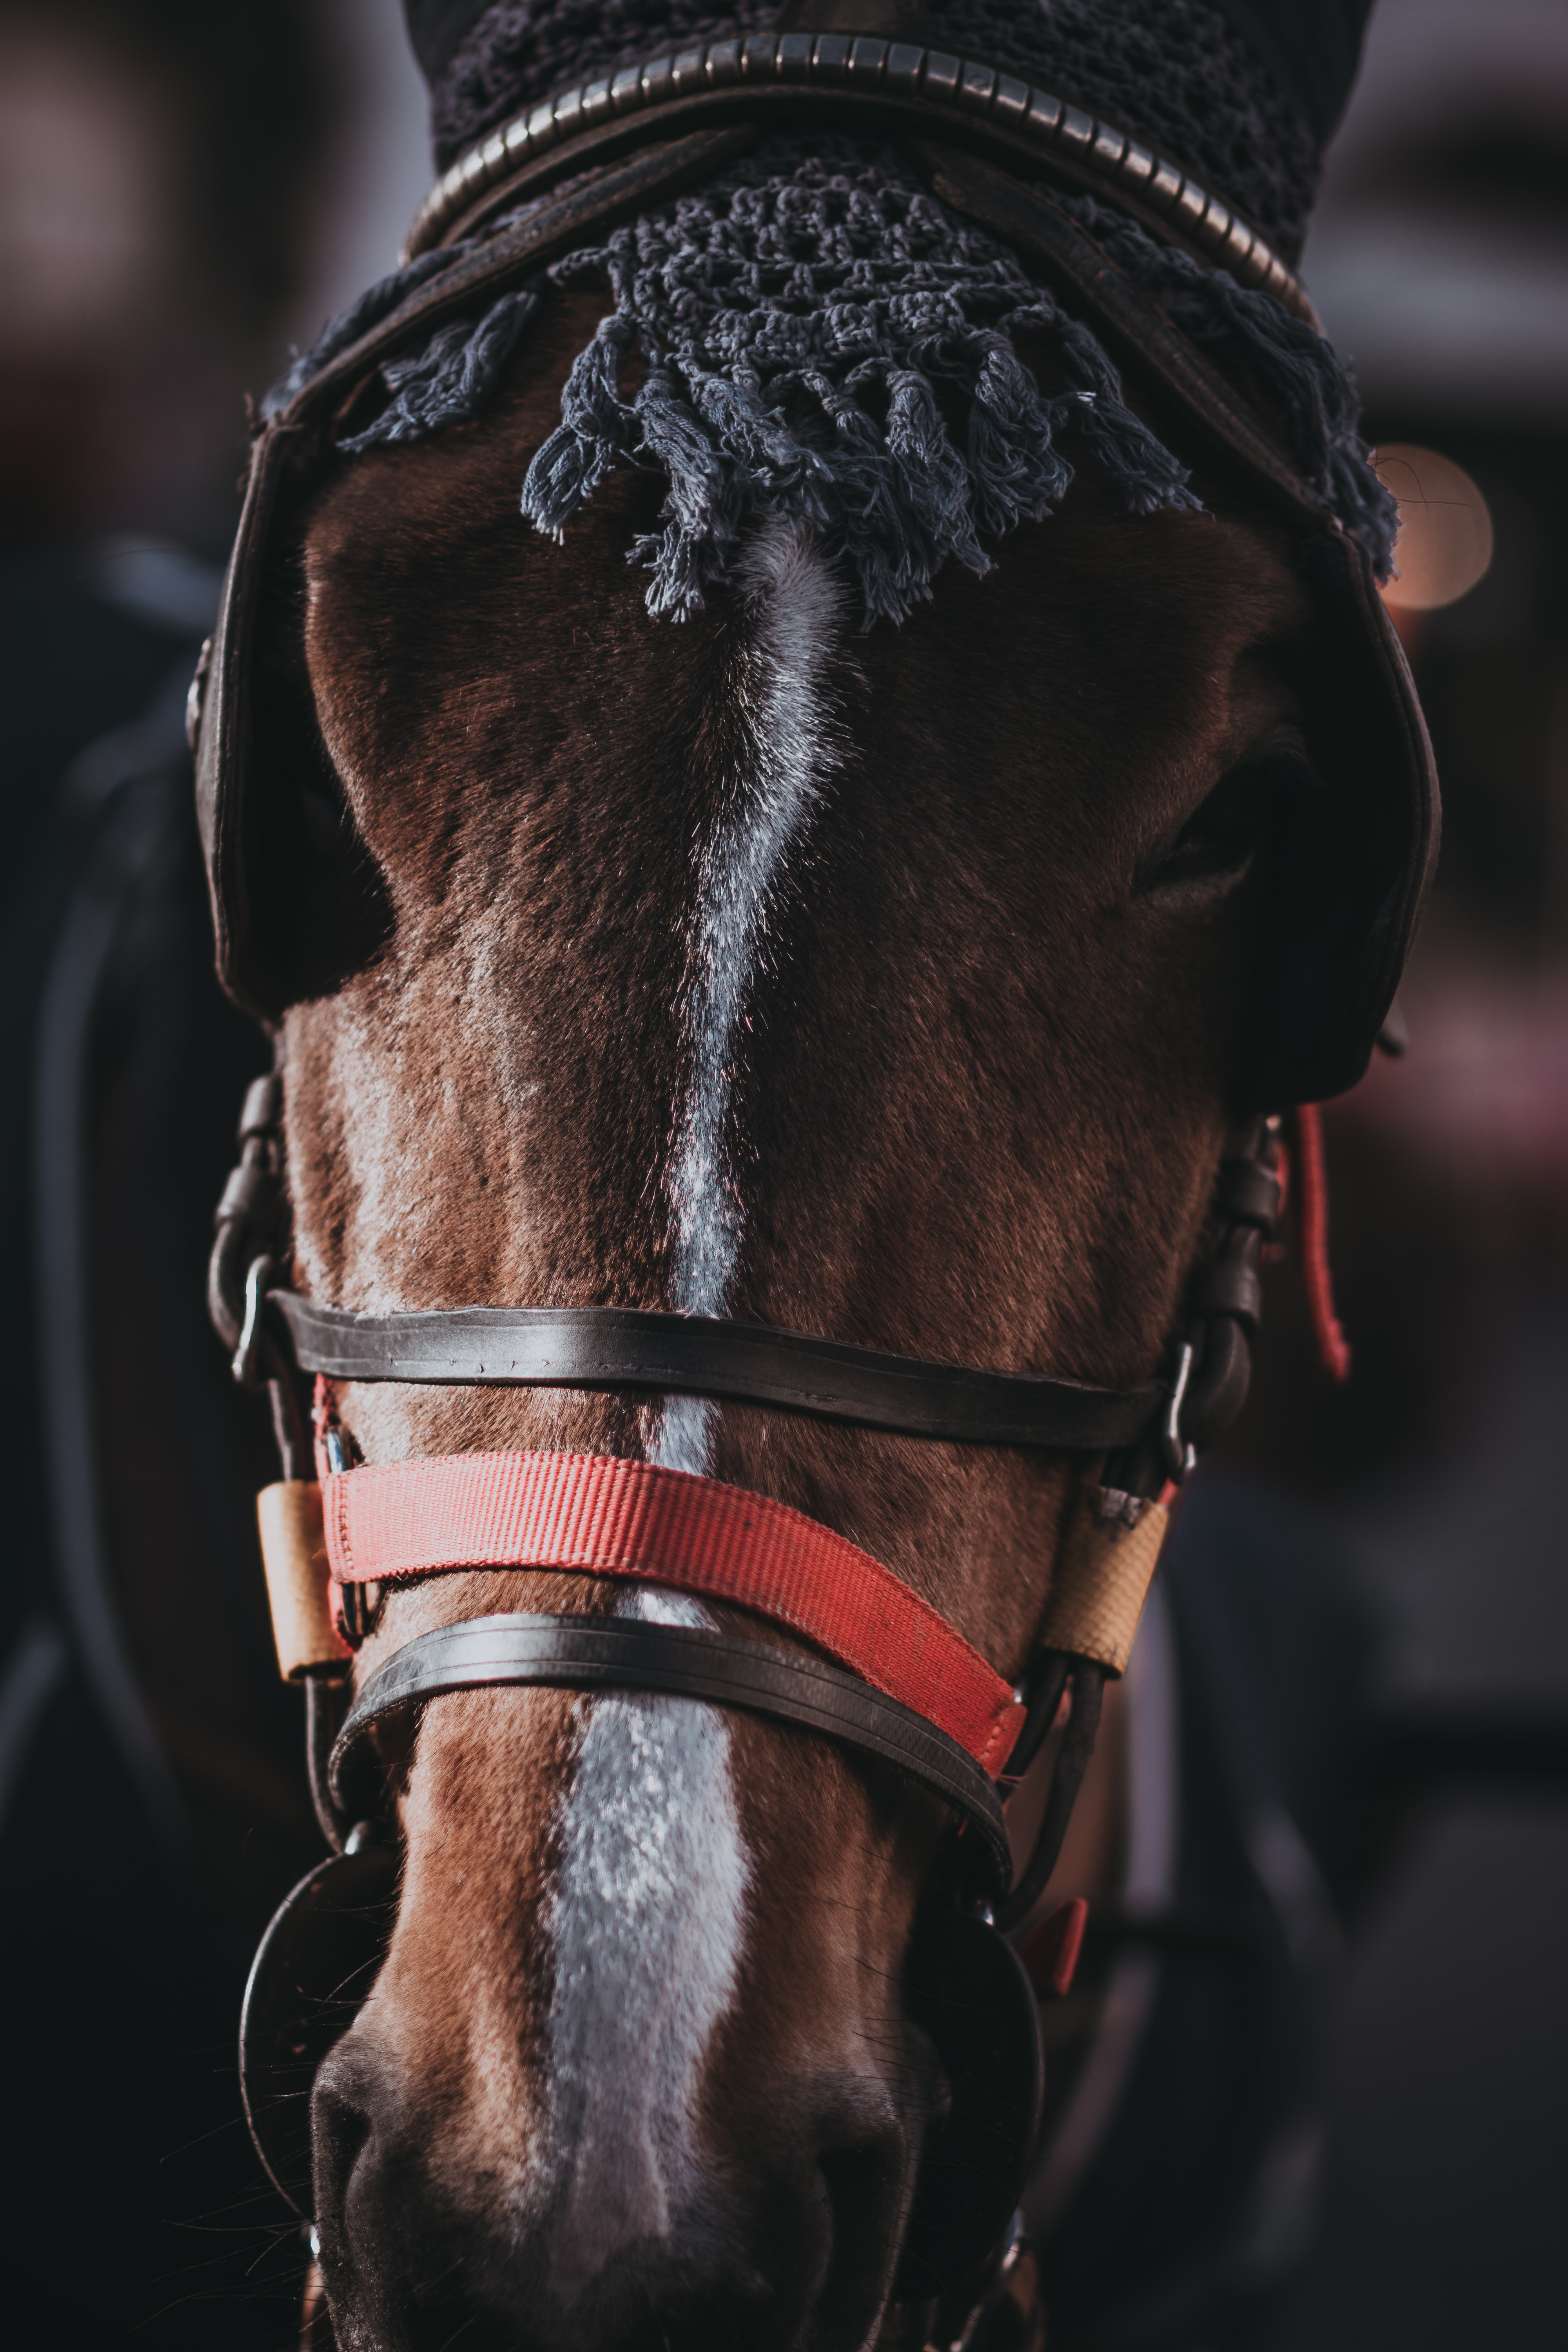 A close-up of the head of a horse with blinkers on